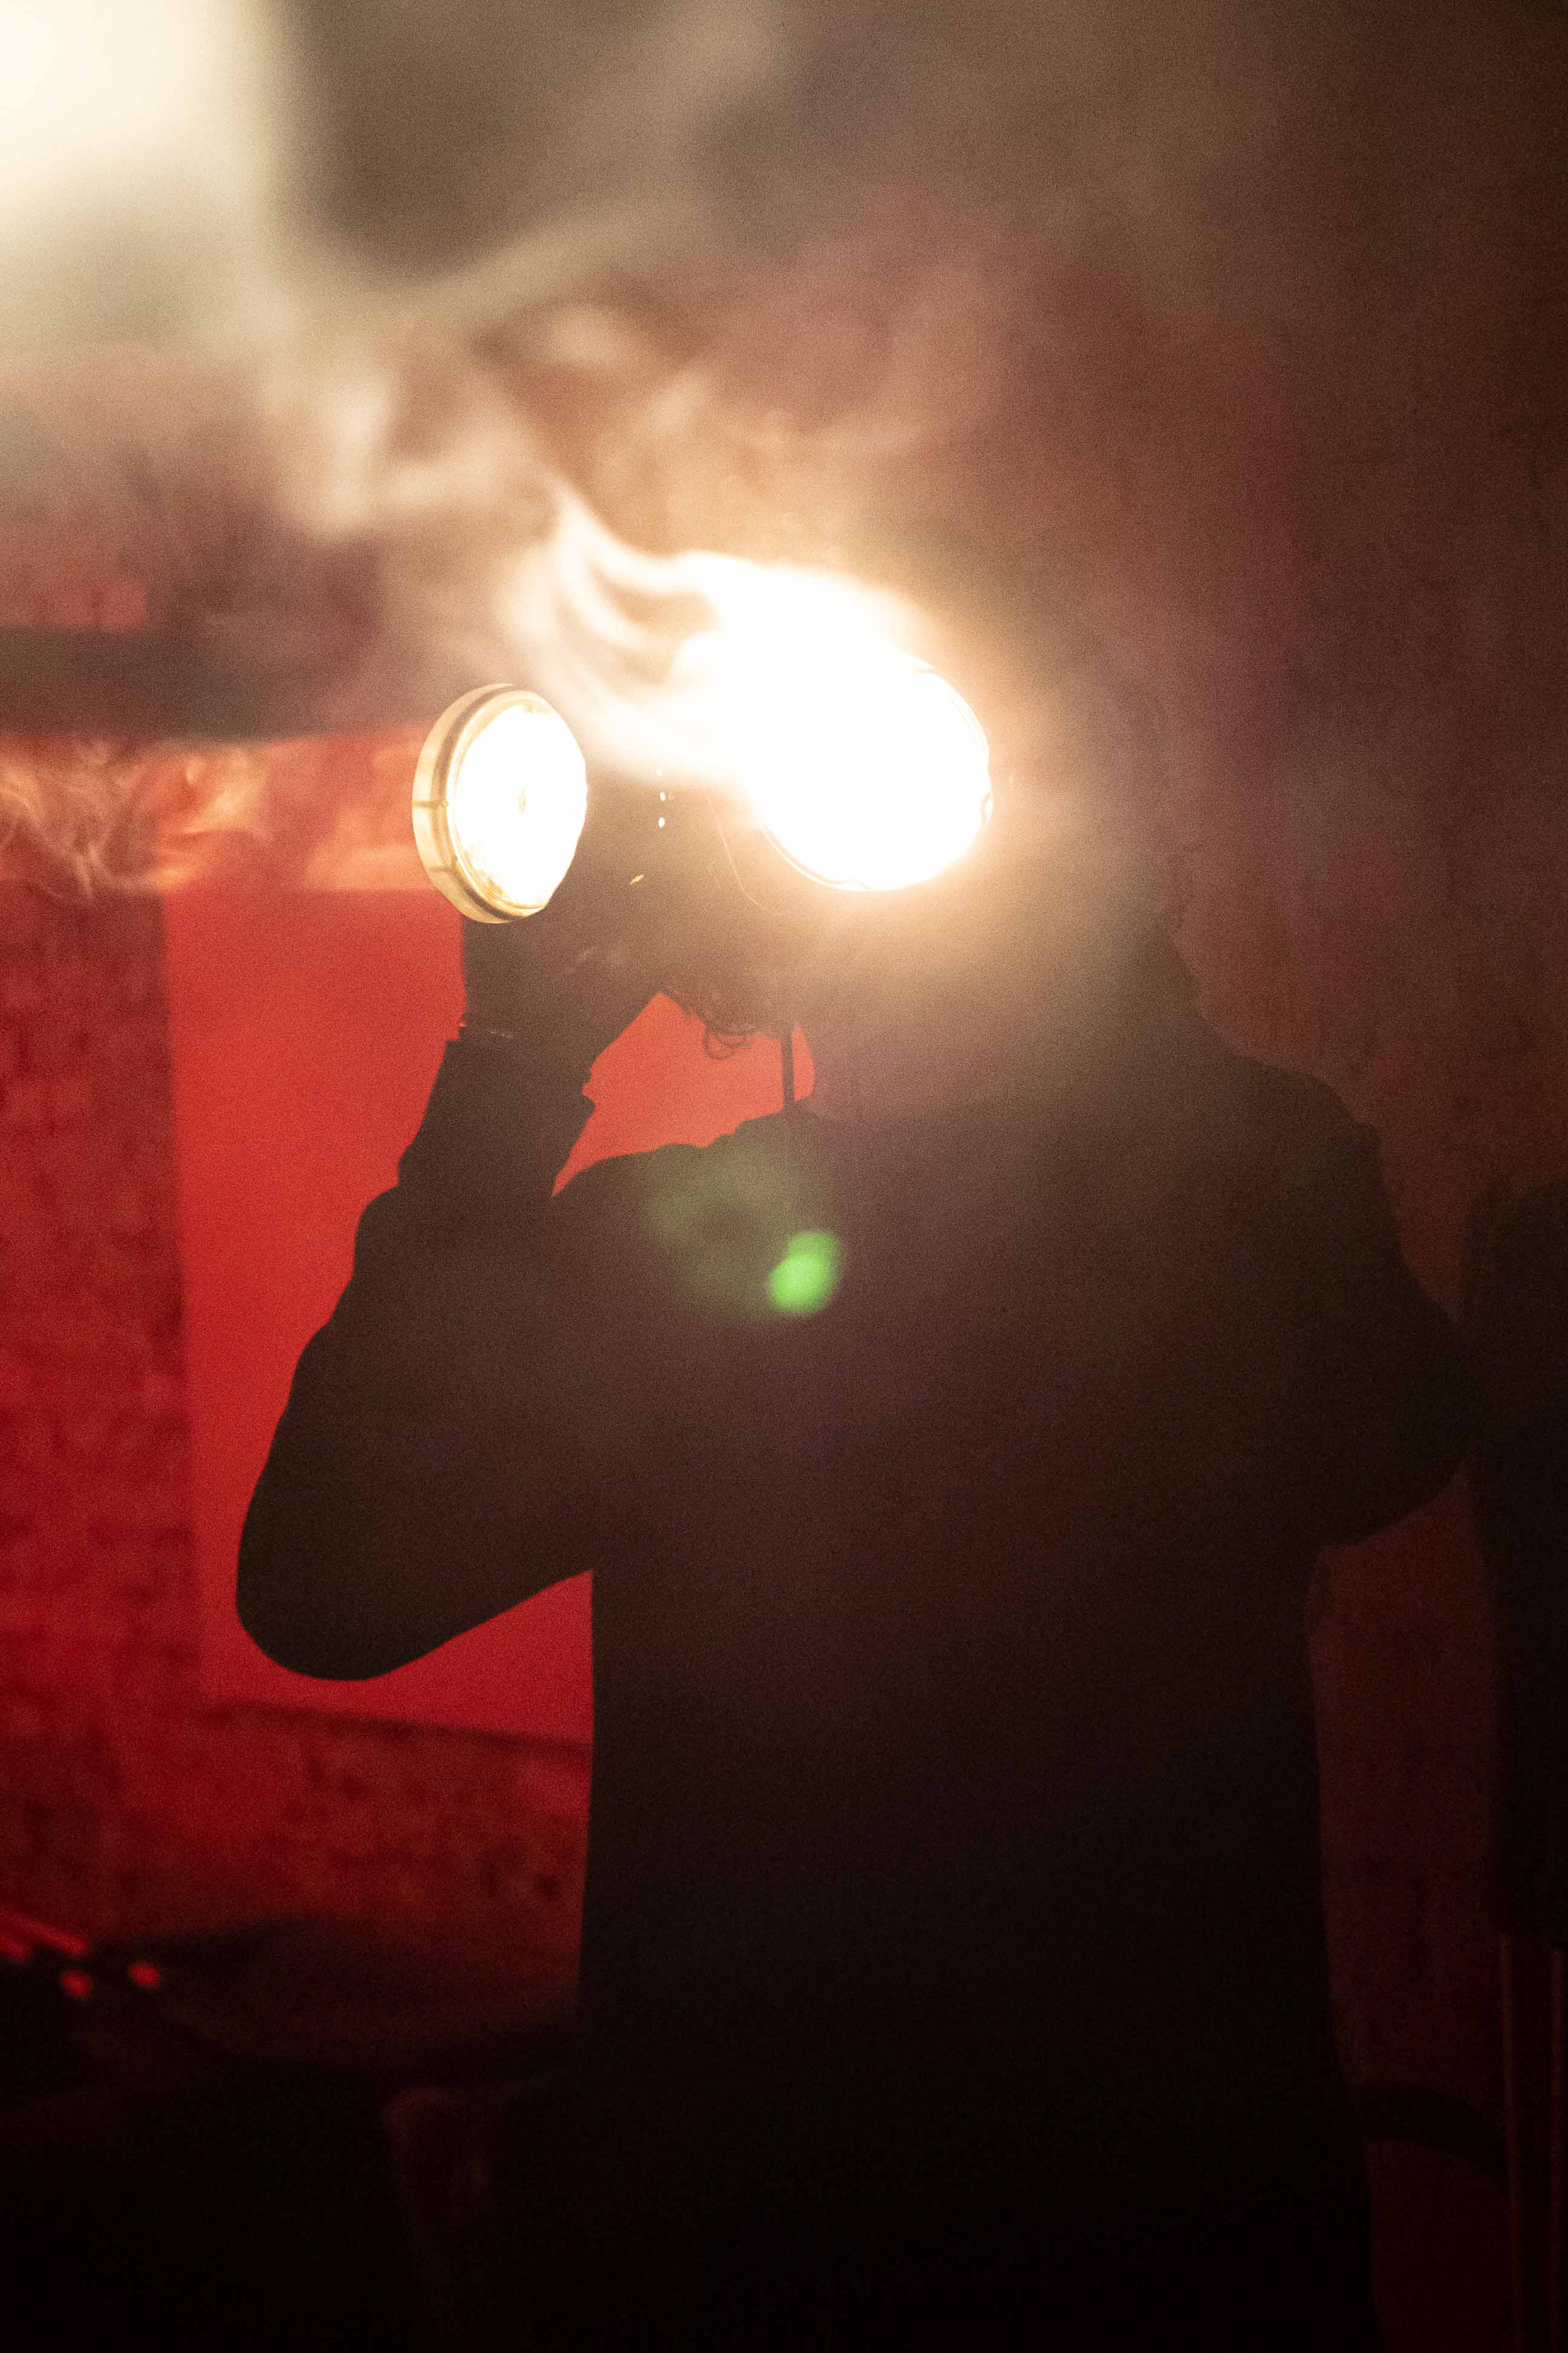 Man holding lights in front of face.